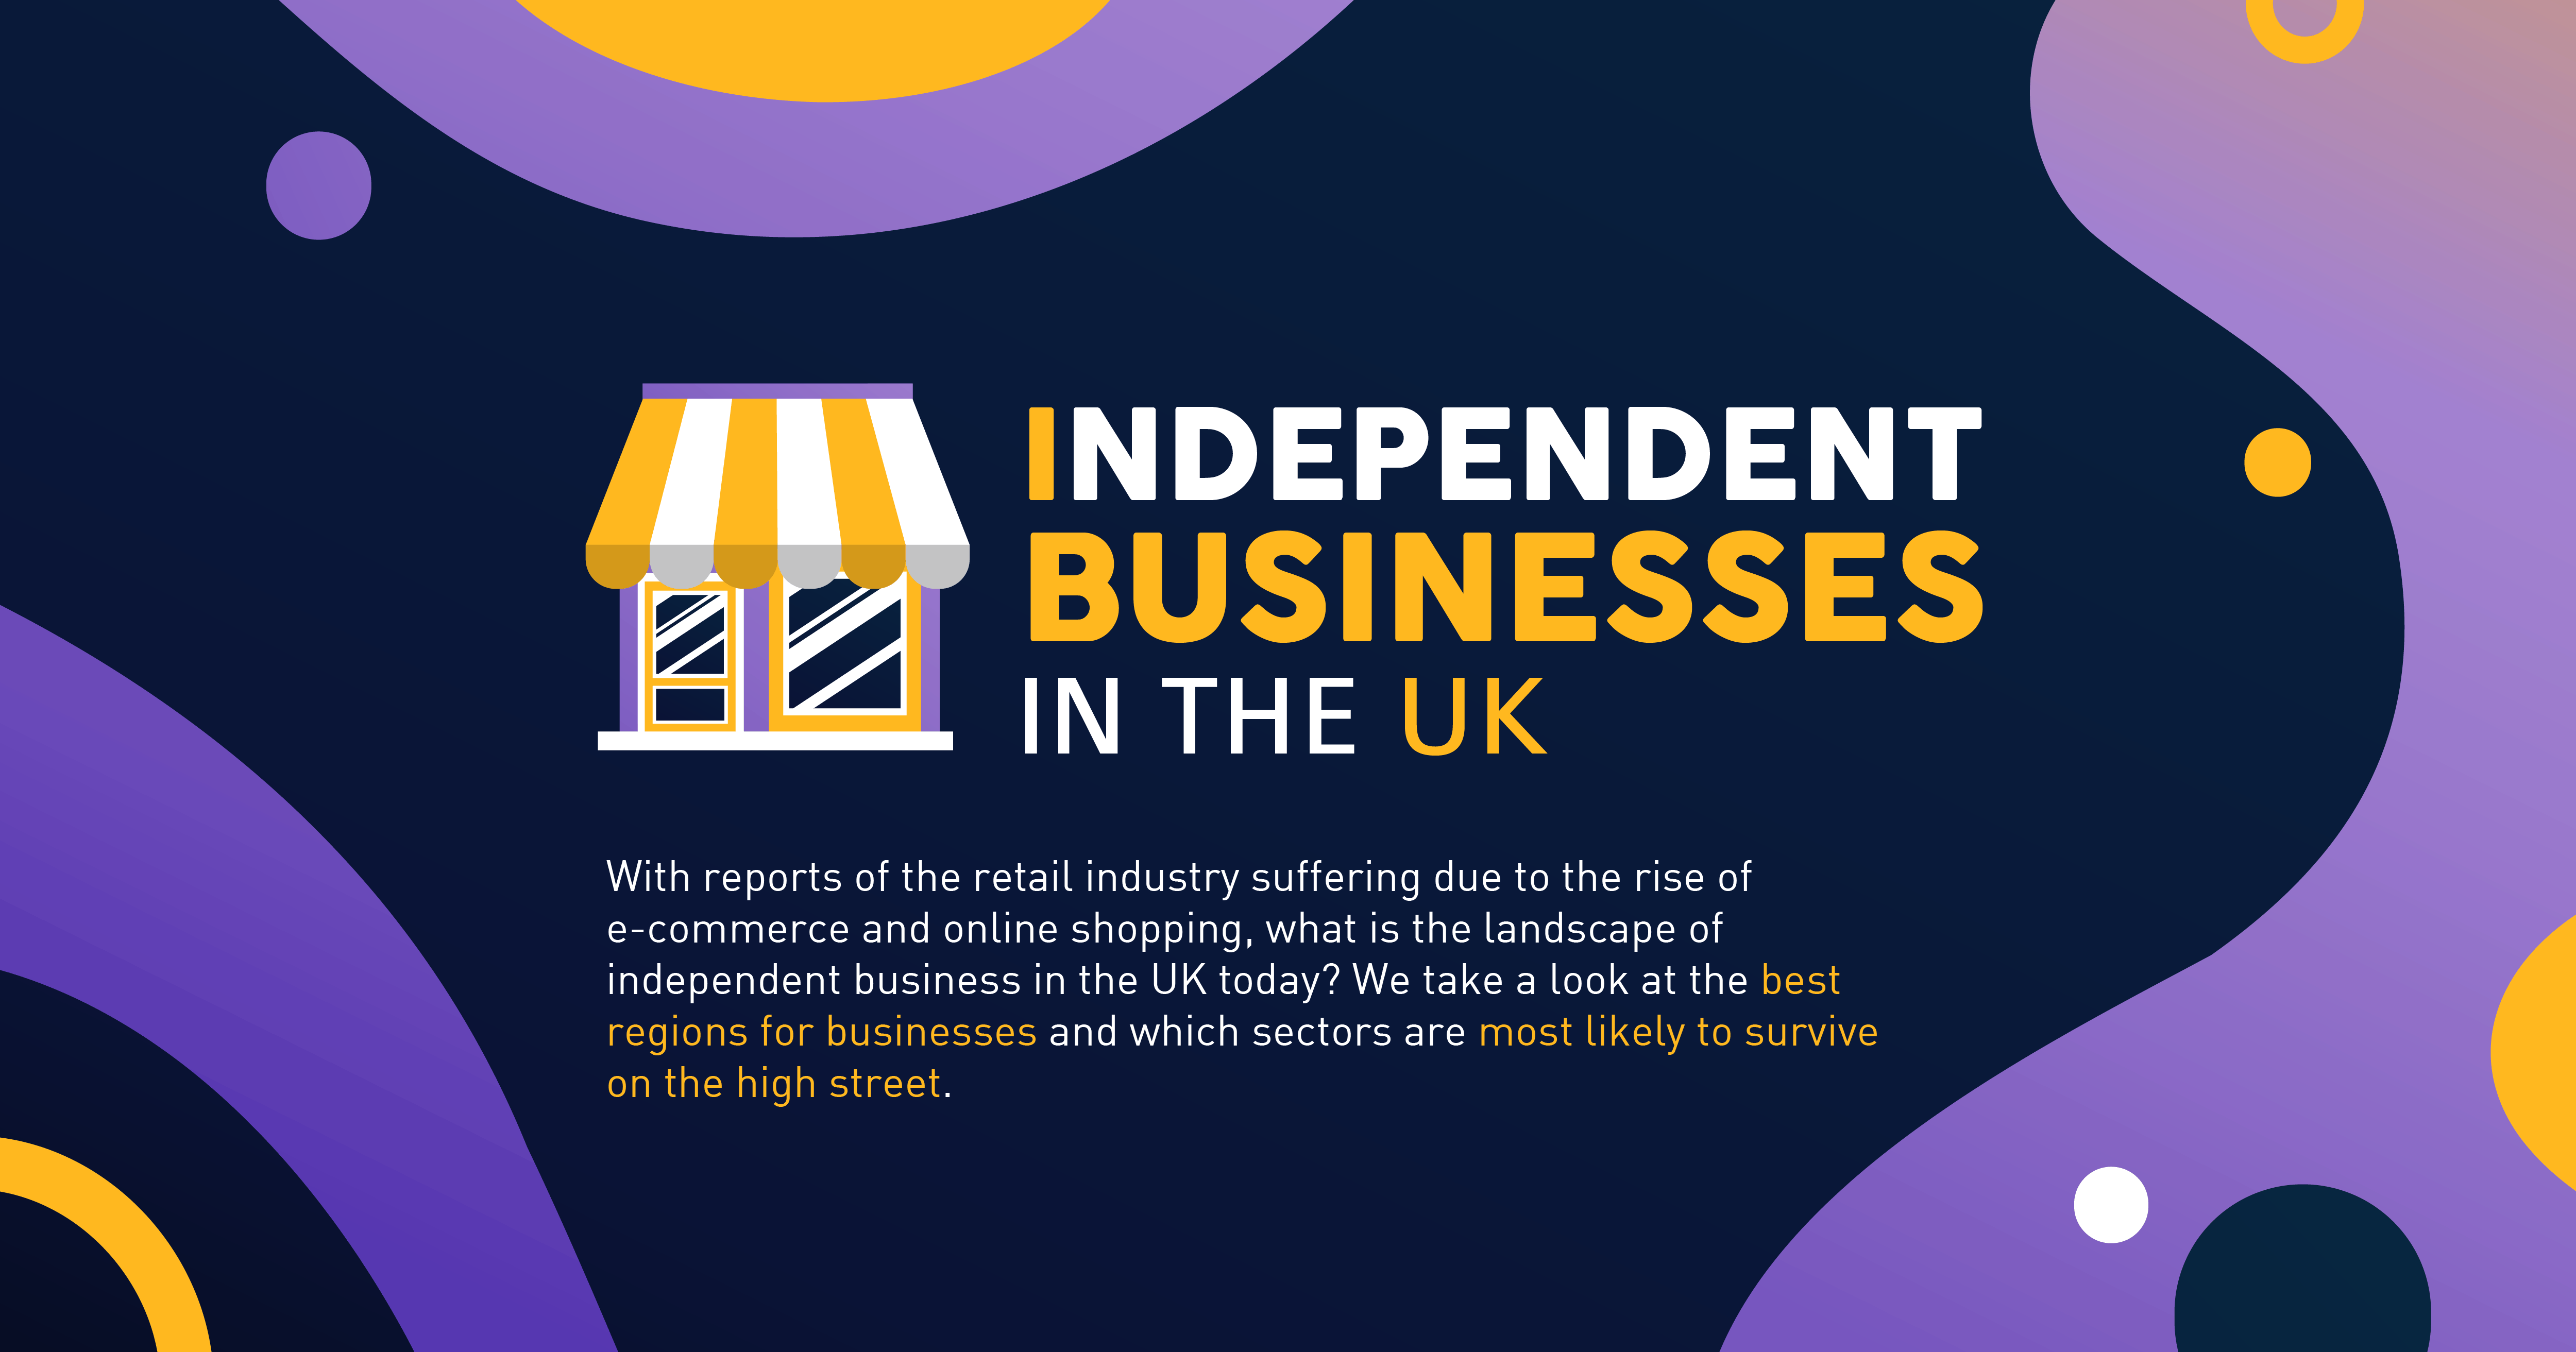 Independent Businesses Stats In The UK Header